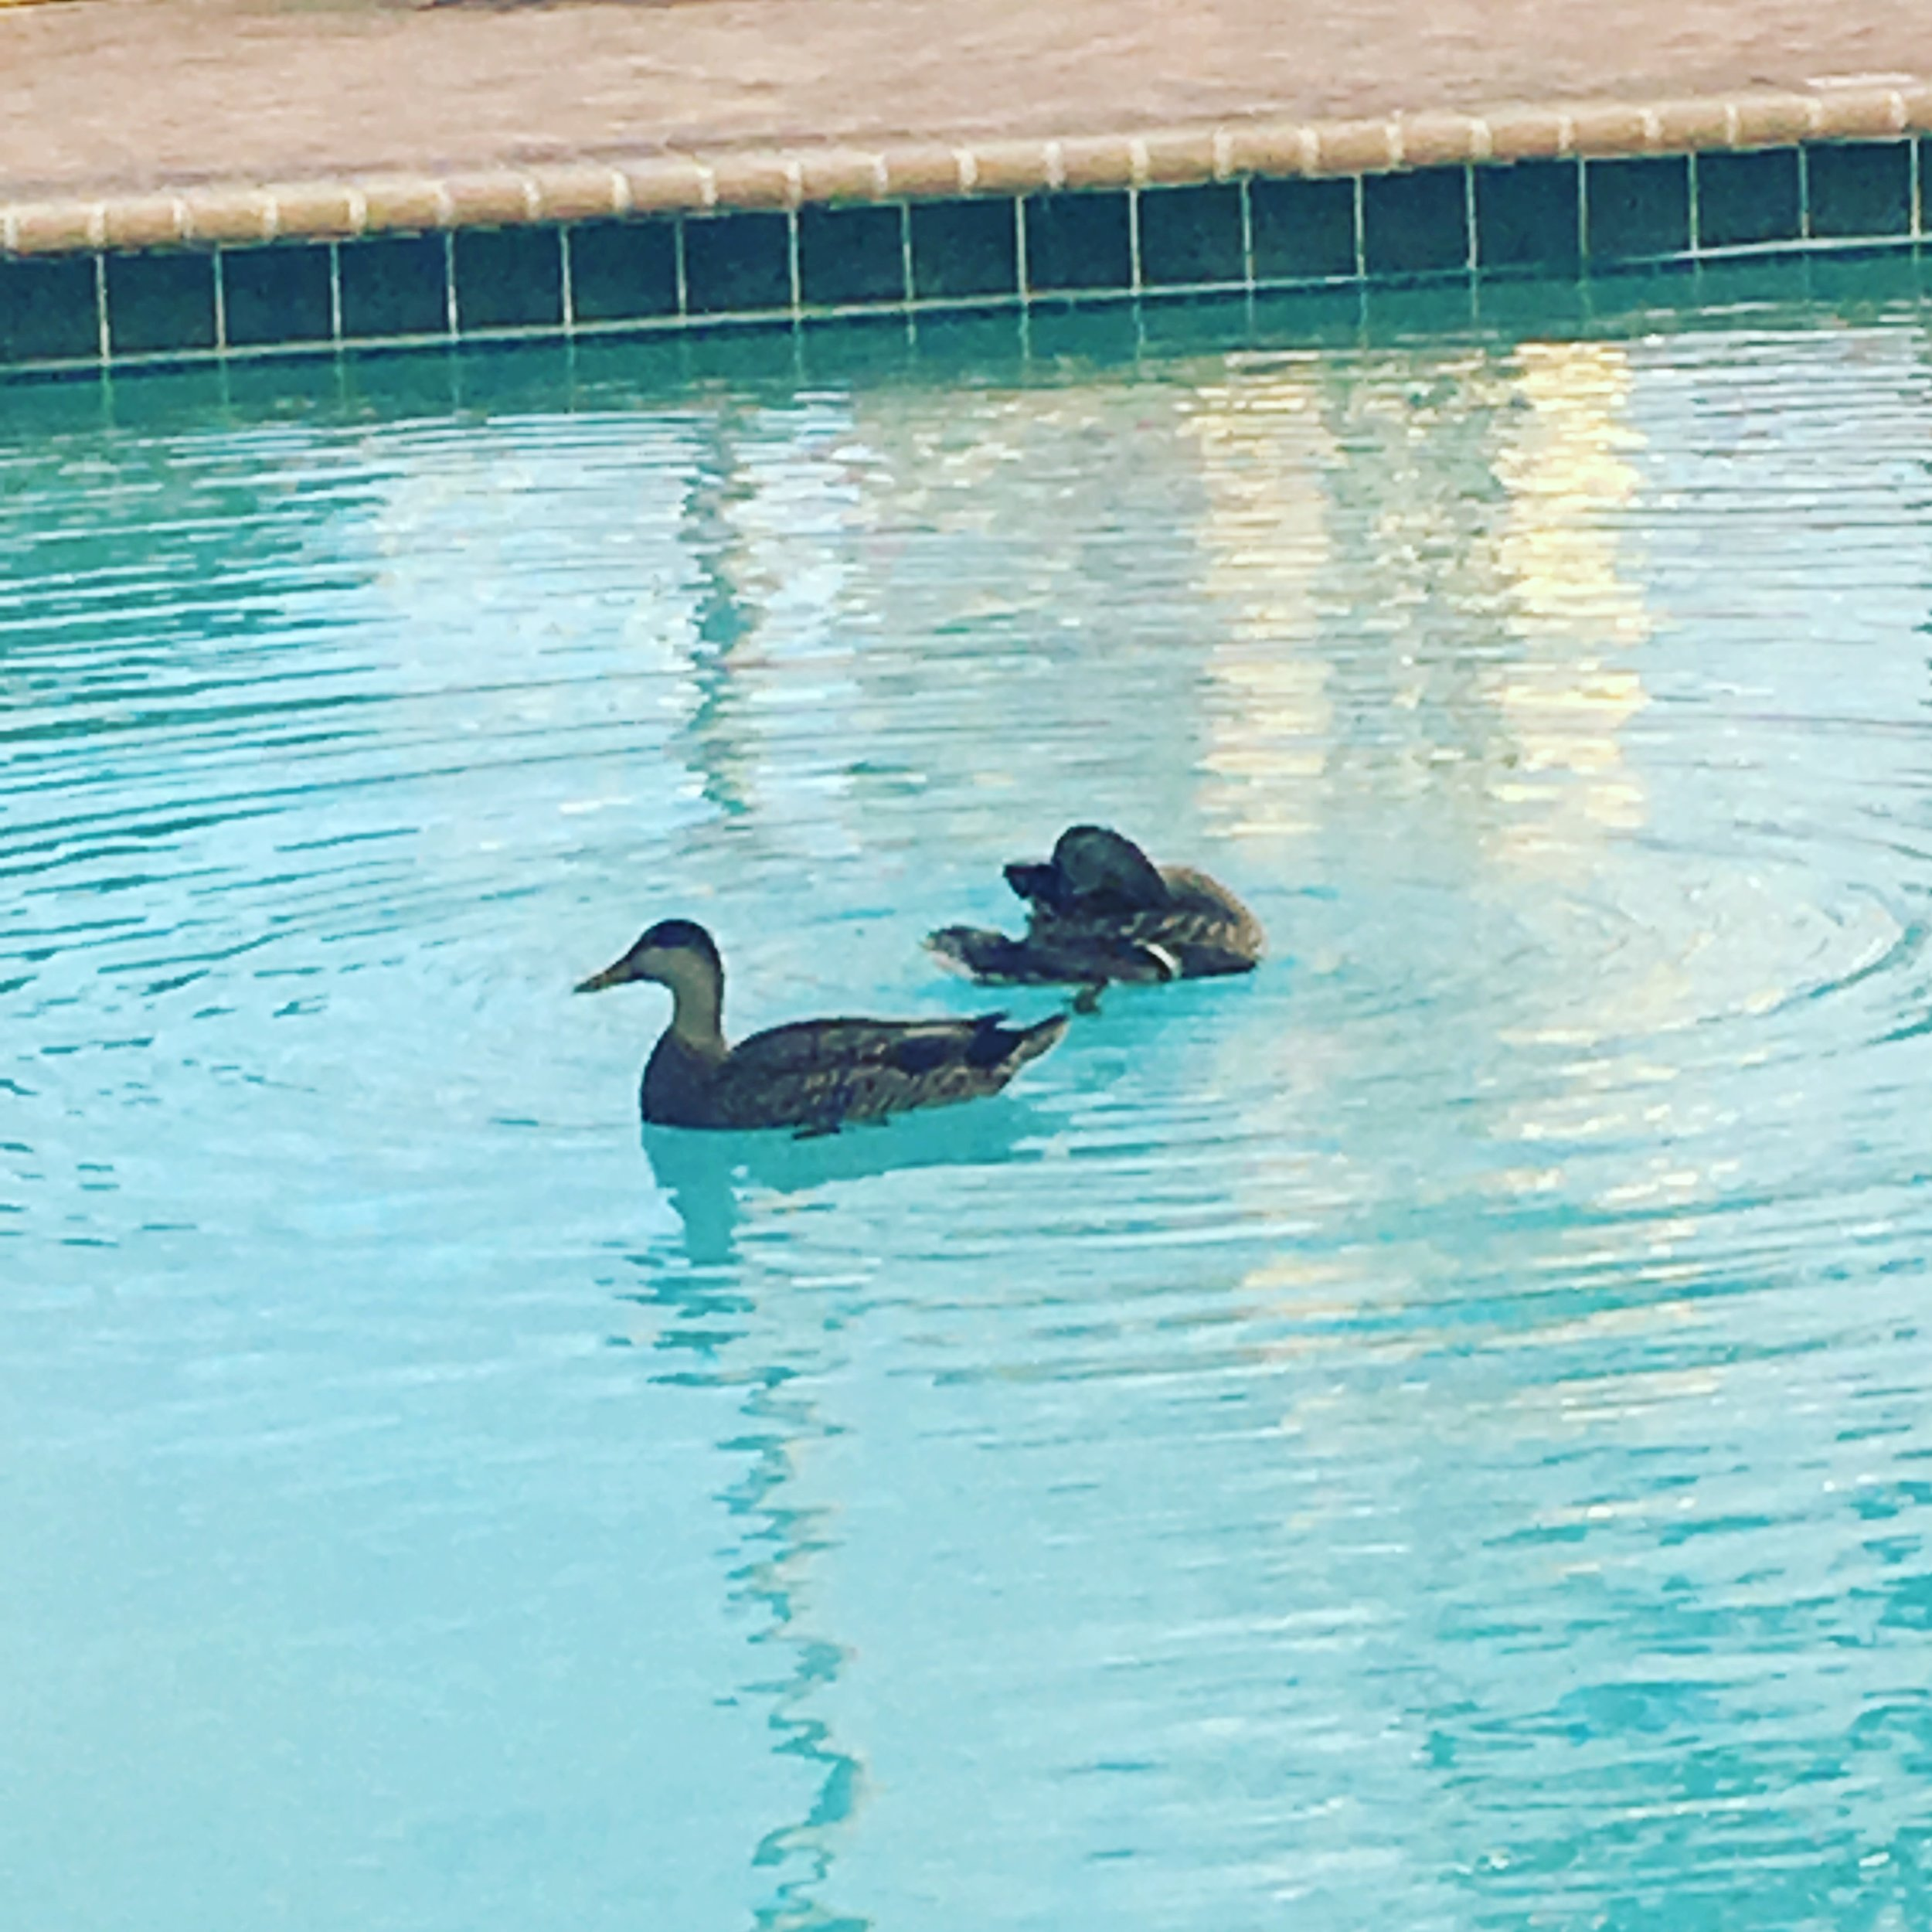 And, perhaps the best birds, the common pool duck